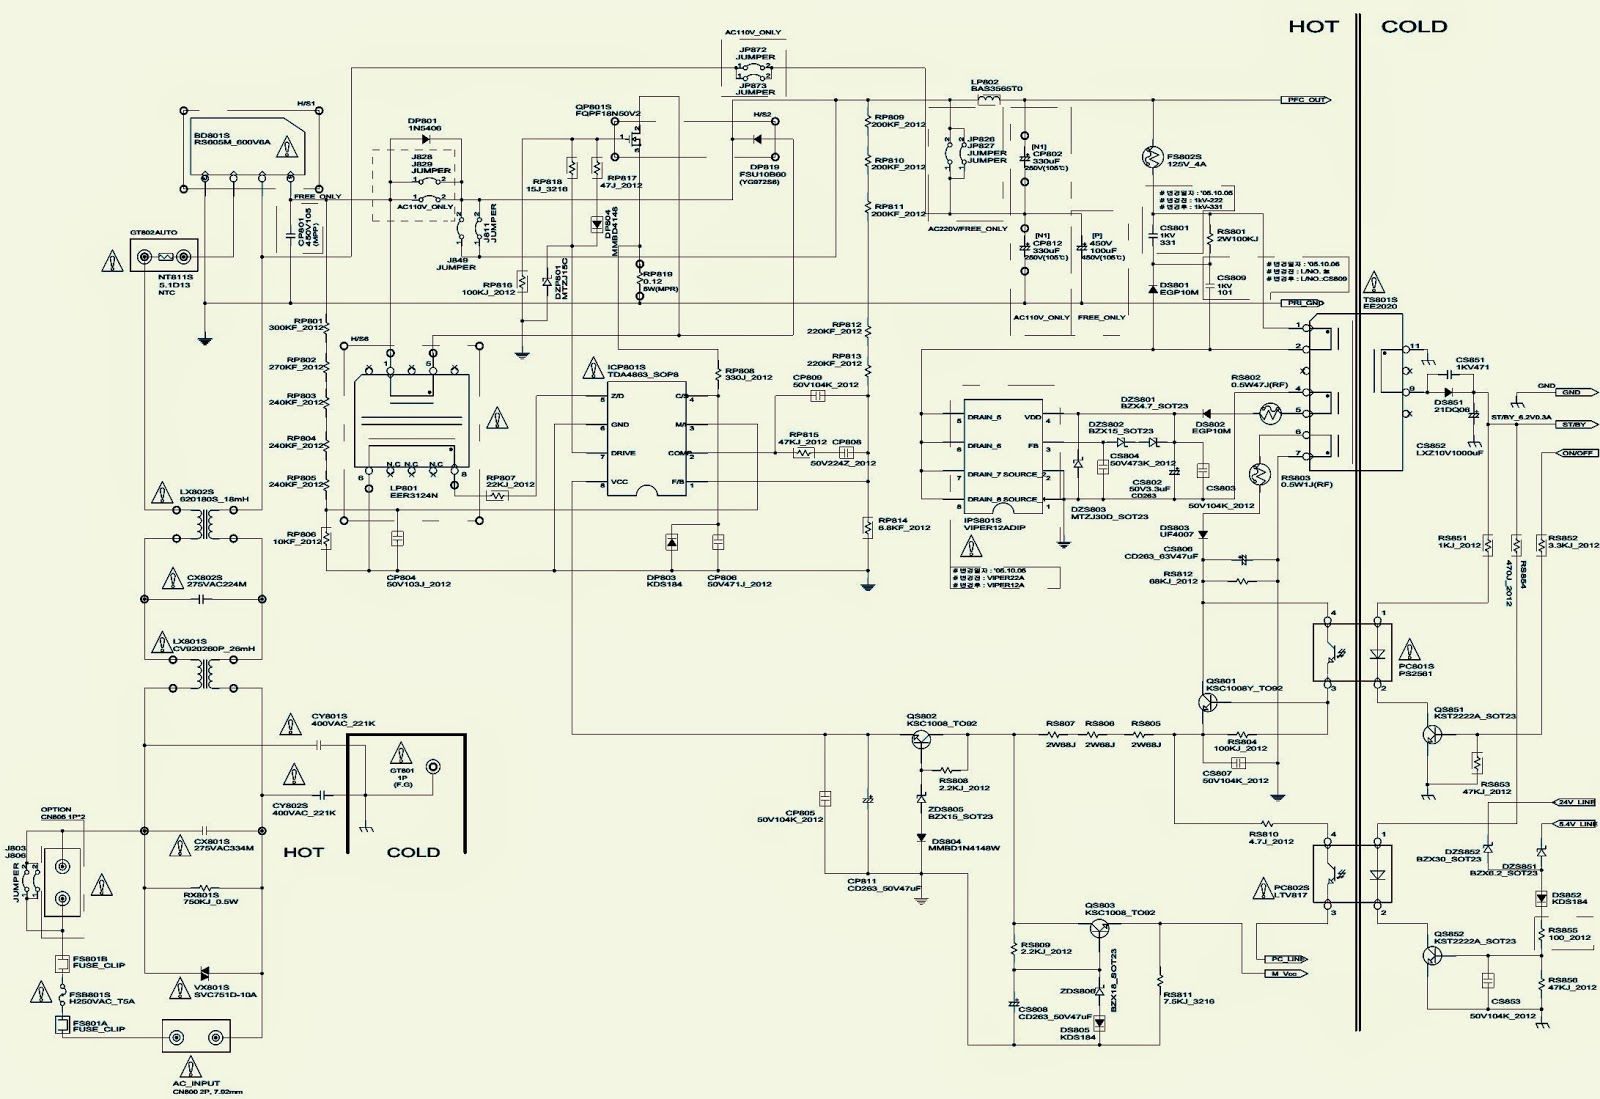 samsung schematic diagrams lcd tv smps - samsung bn96-0b - schematic (circuit diagram ...